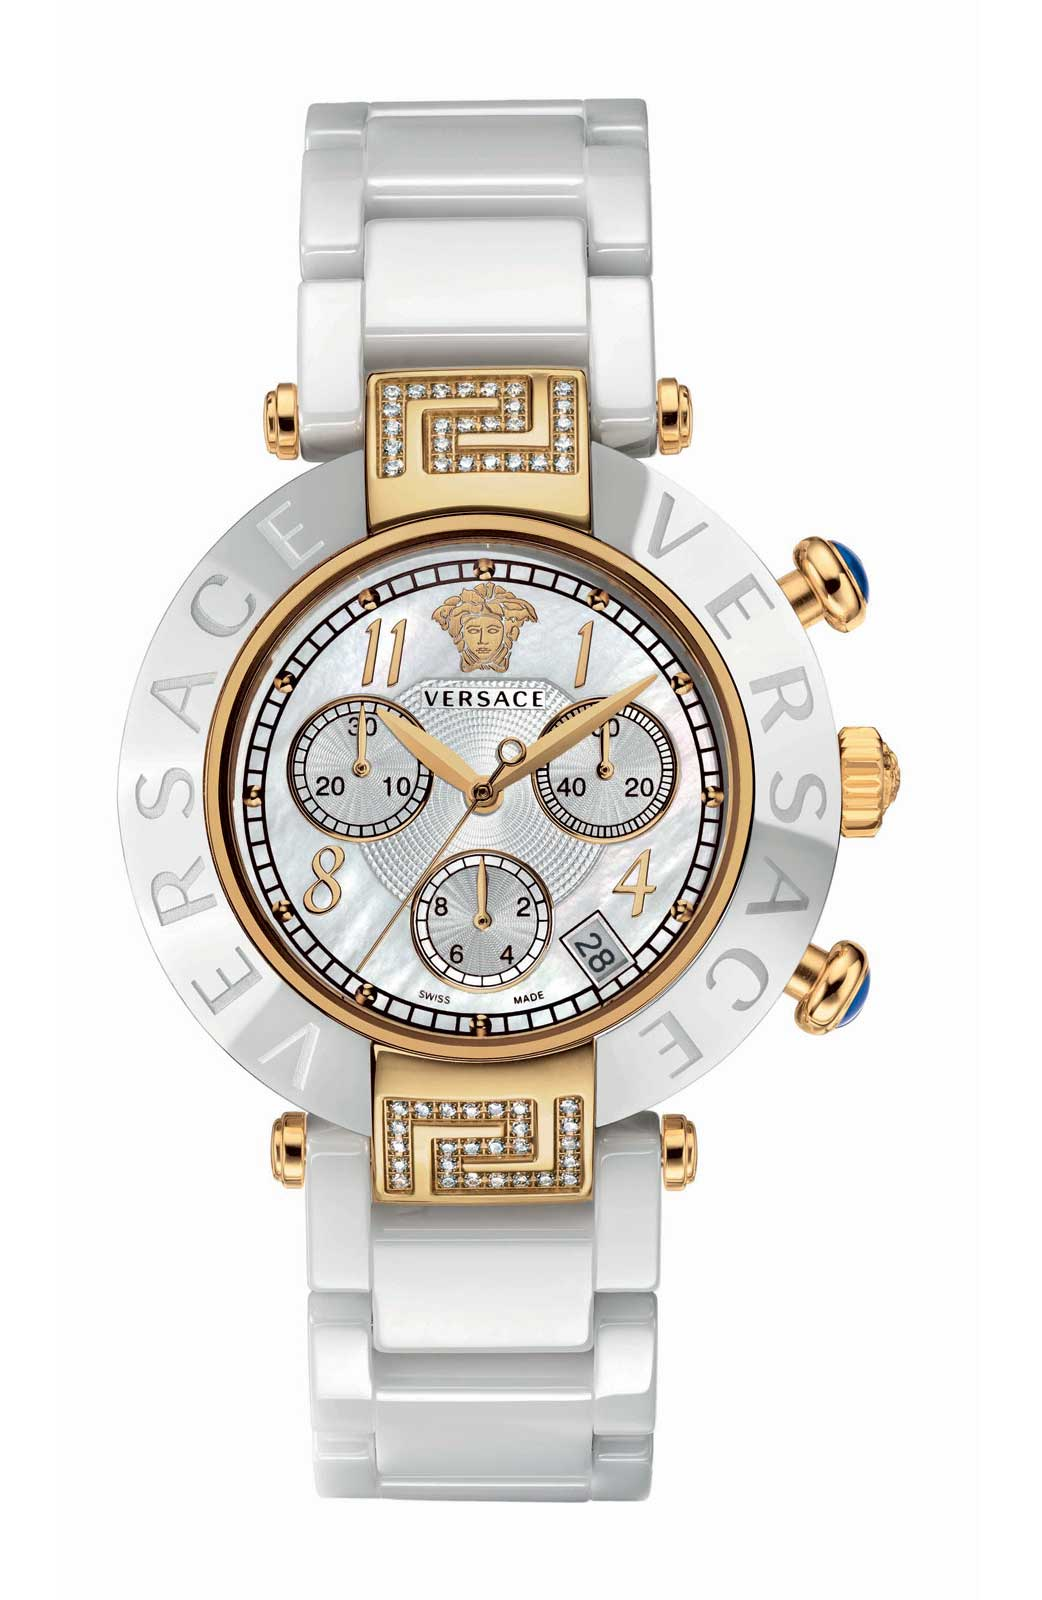 Versace women's watches10